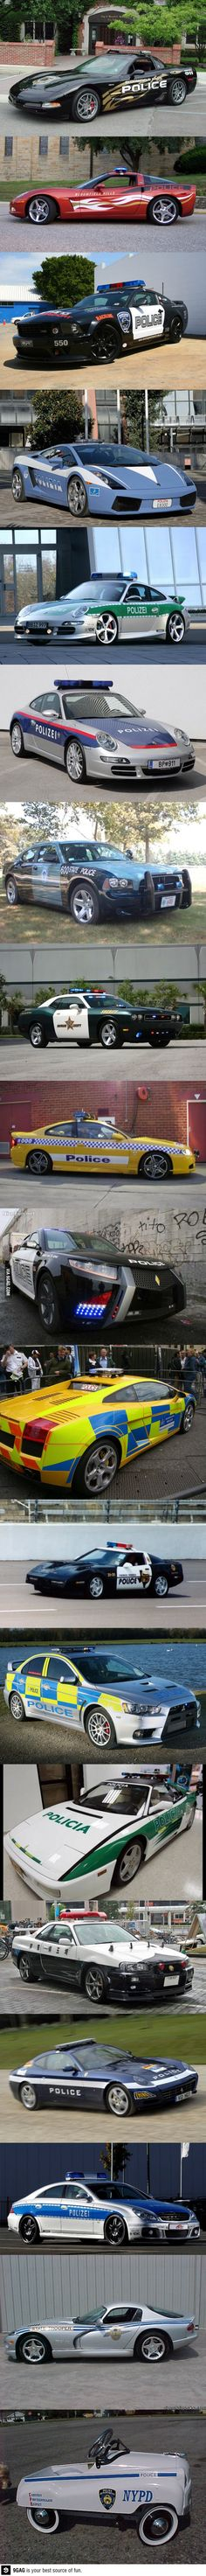 Police cars all over the world - we need corvettes for America's police!